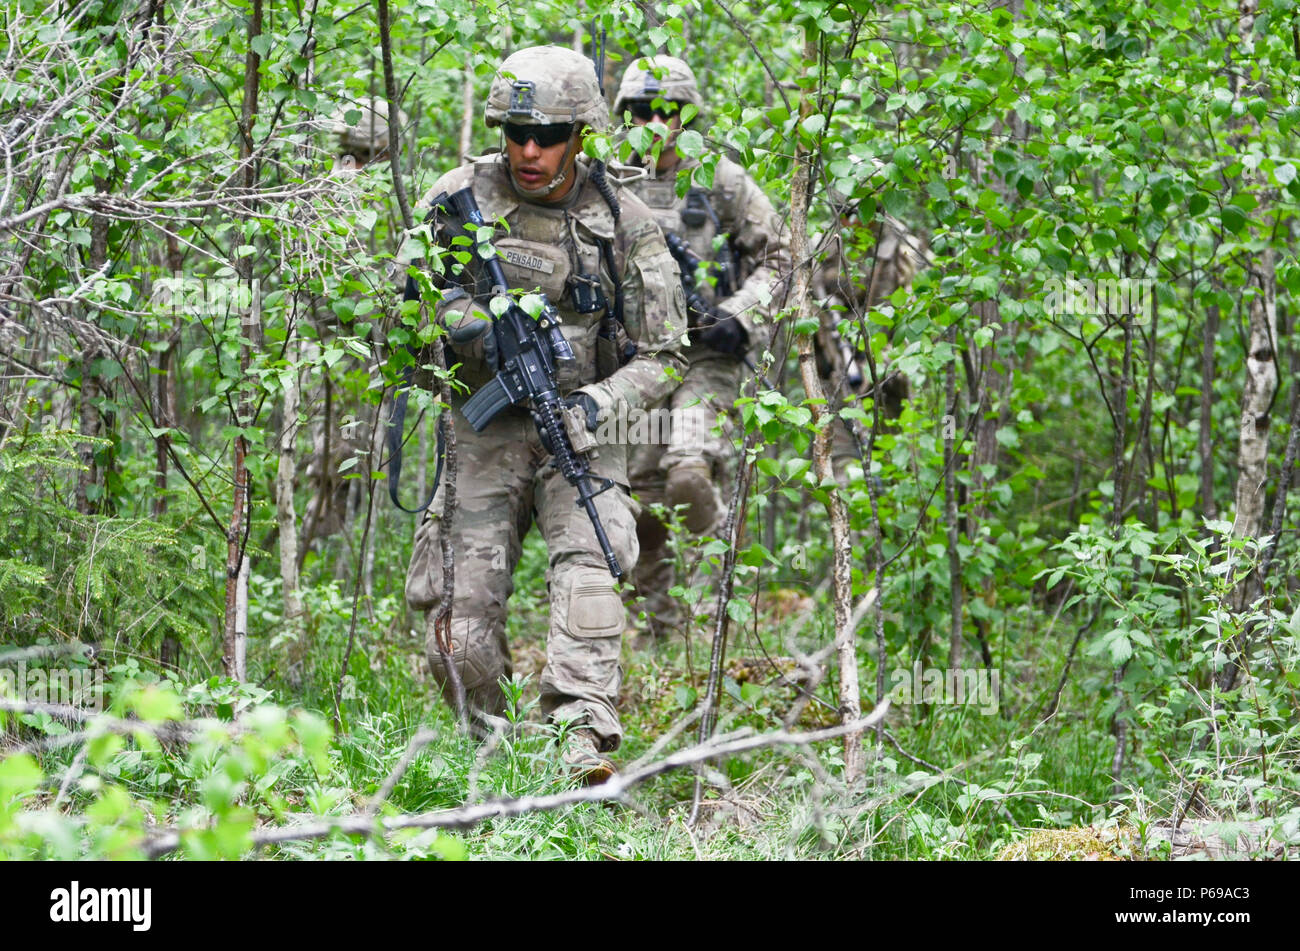 Eagle Troop Soldiers from 2nd Squadron, 2nd Cavalry Regiment, maneuver through the woods during a squad training exercise (STX) at Tapa Training Area, Estonia, May 26, 2016. (U.S. Army photo by Staff Sgt. Steven M. Colvin) - Stock Image